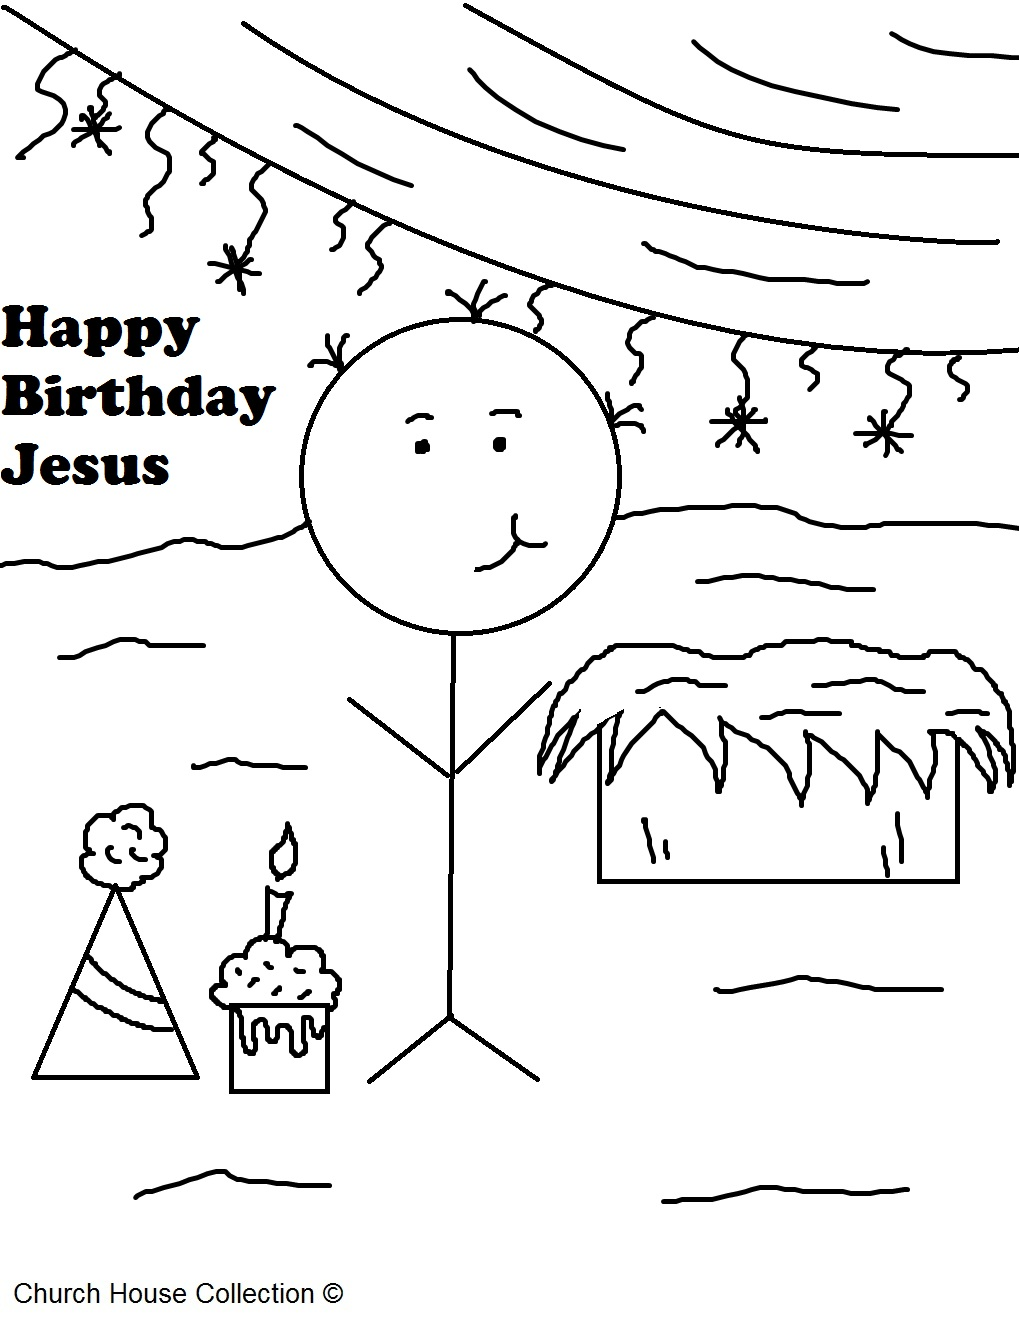 Clip Art Christmas Coloring Pages For Sunday School christmas sunday school lessons by church house collection free happy birthday jesus coloring pages for kids in or childrens